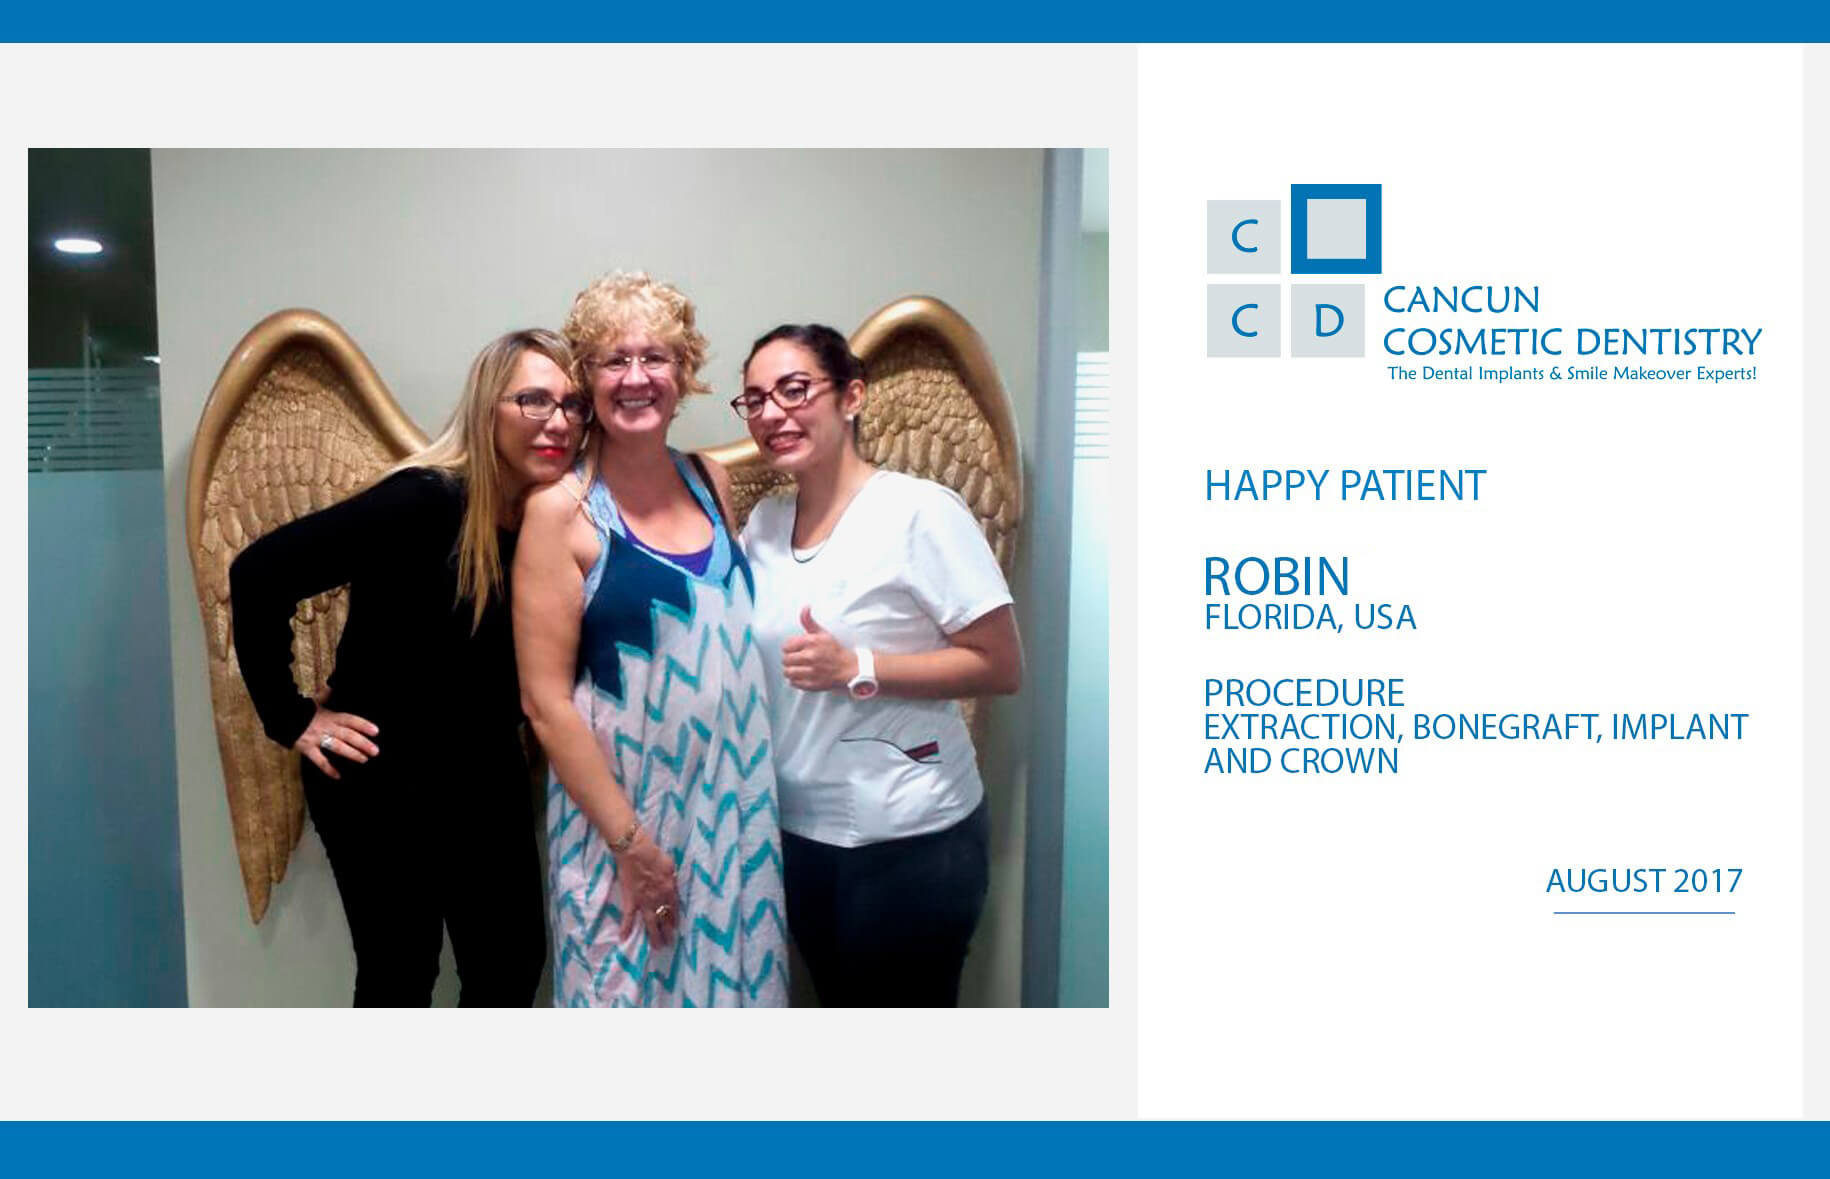 We keep getting new happy patients! - Cancun Cosmetic Dentistry